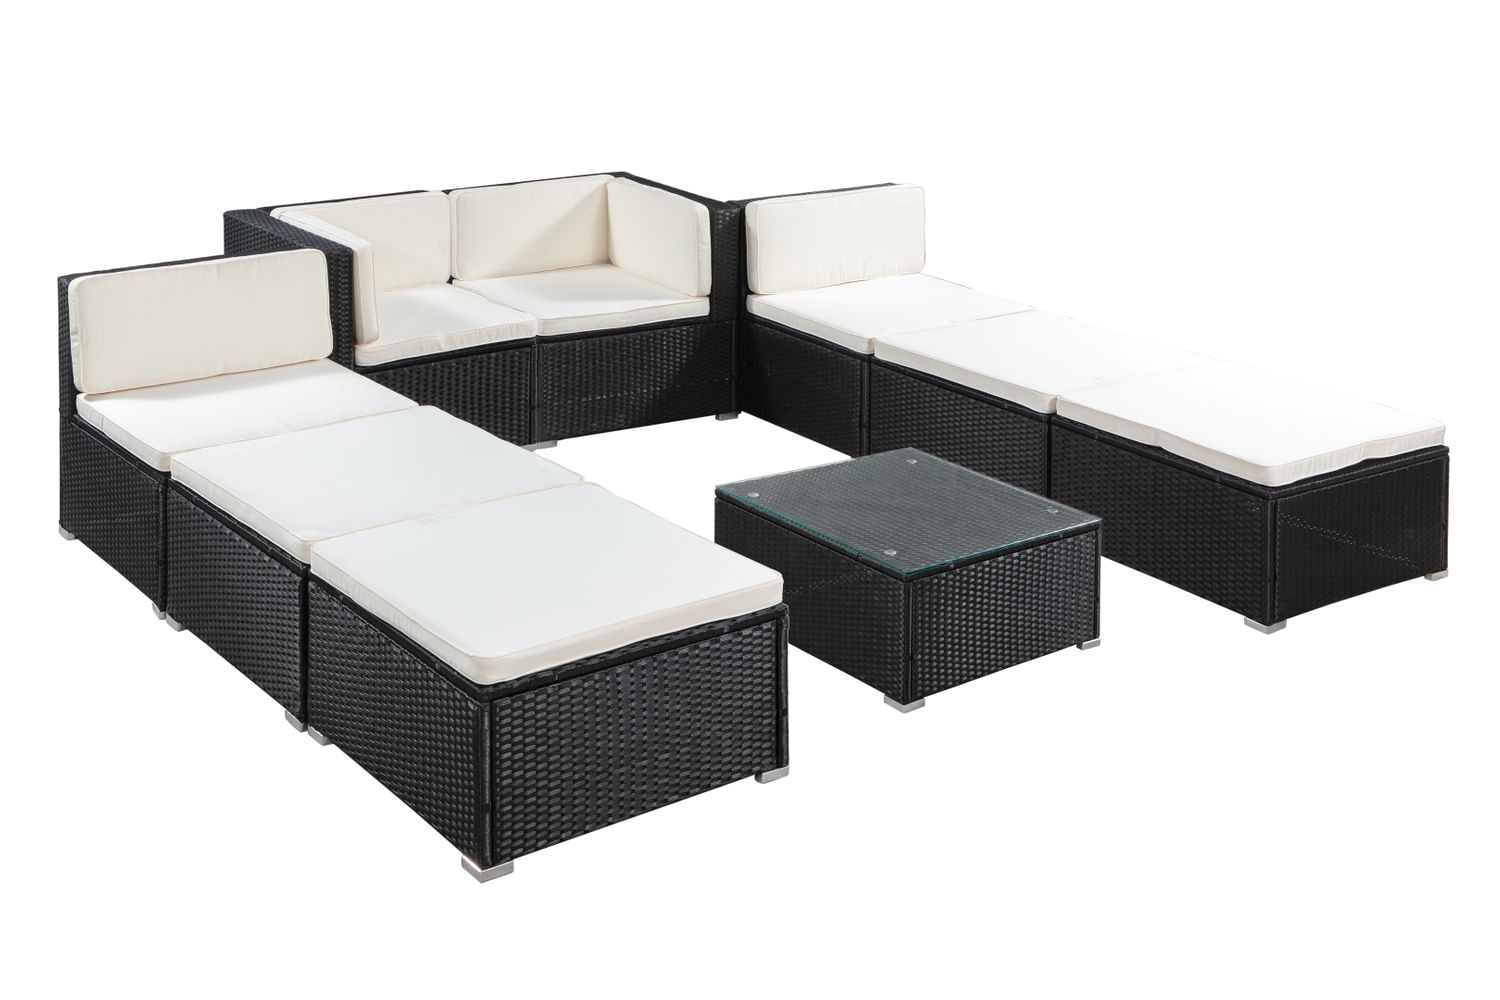 salon de jardin en rotin casa noir magasin en ligne gonser. Black Bedroom Furniture Sets. Home Design Ideas